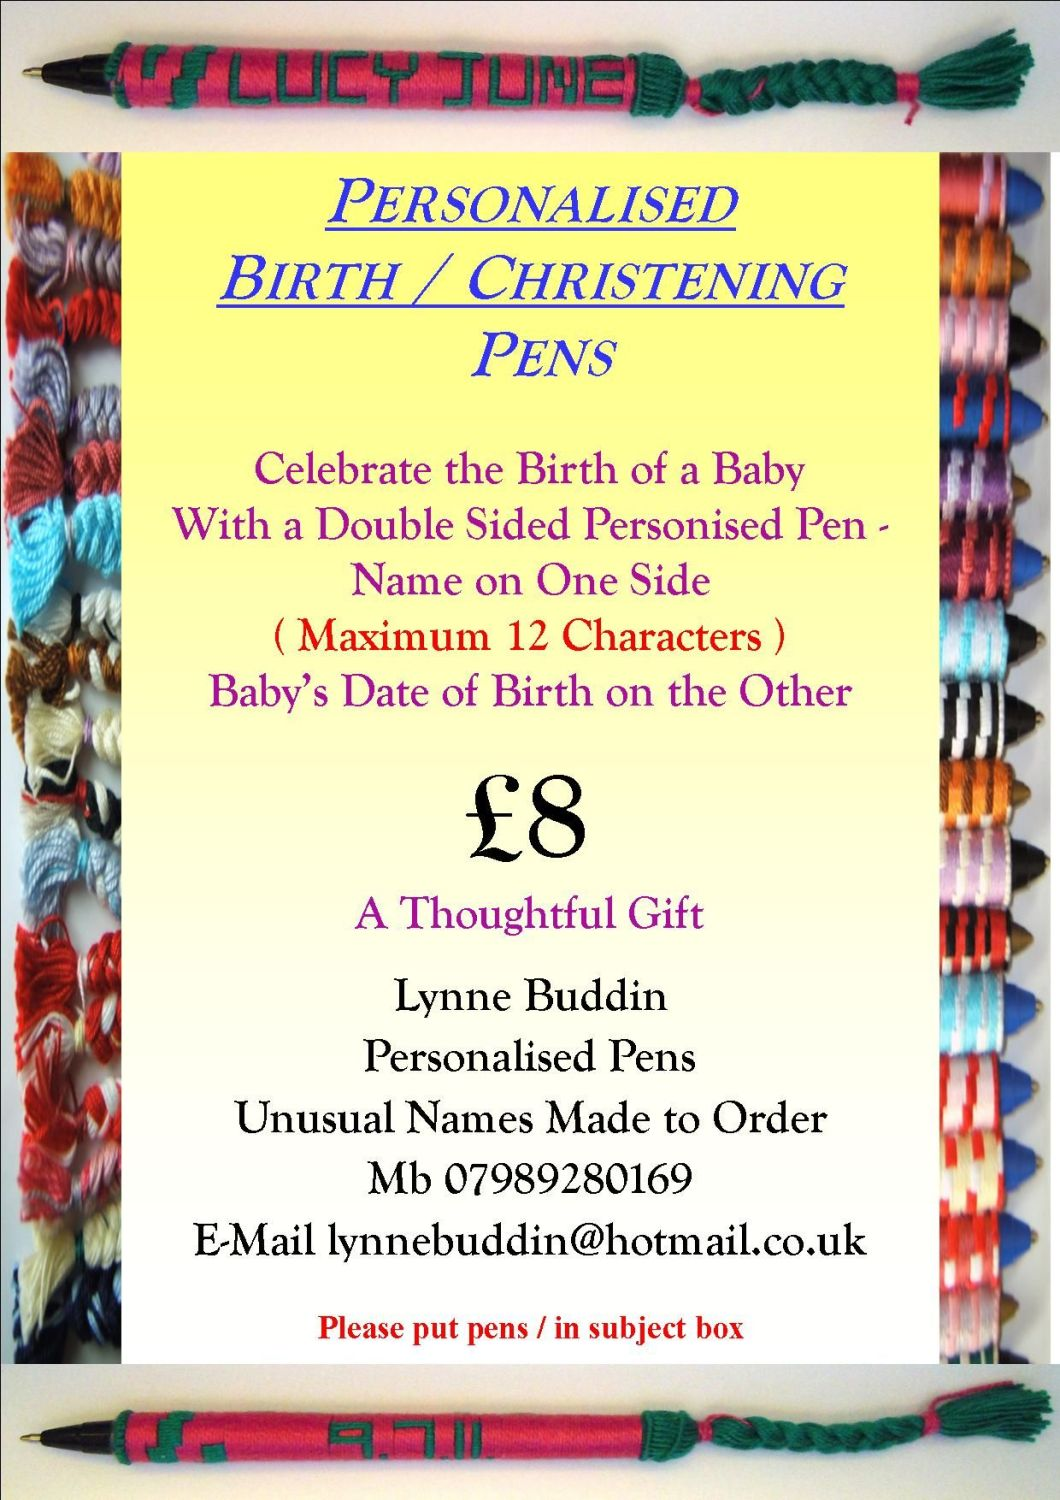 Birth & Christening Pens